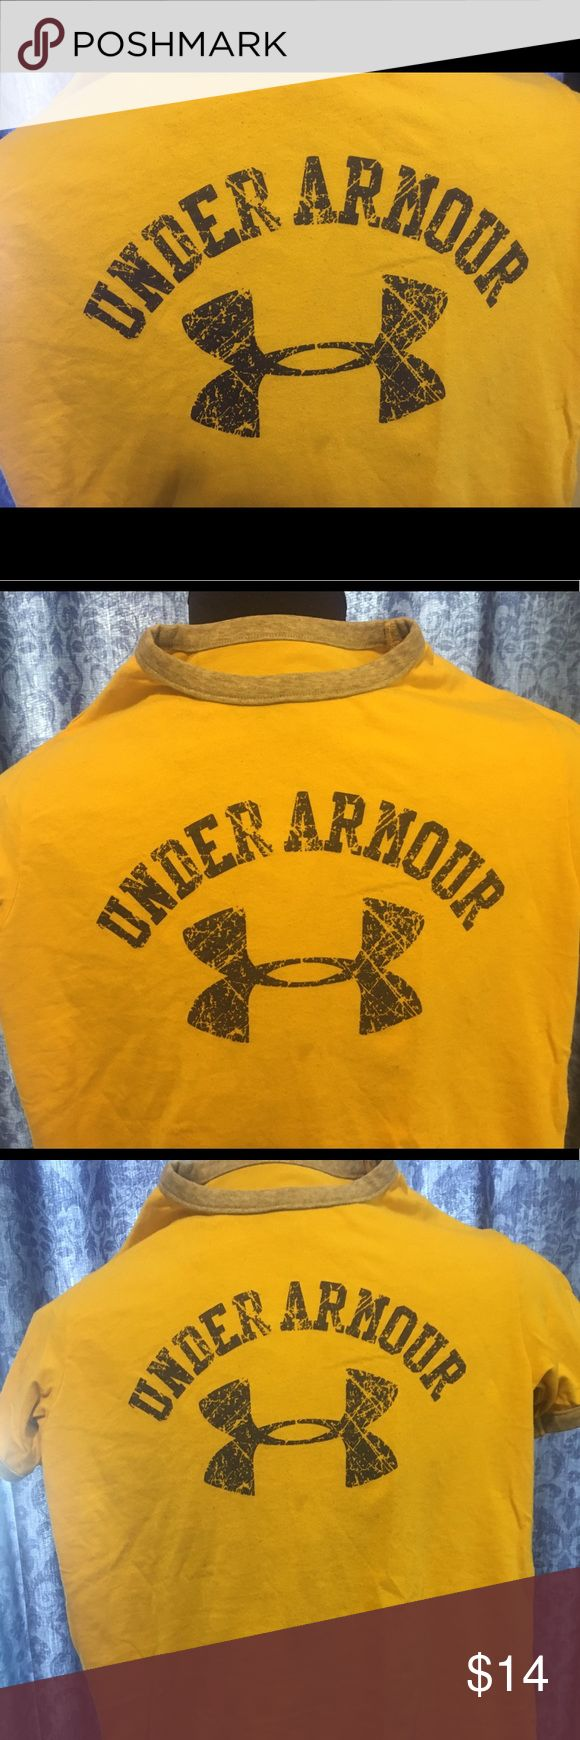 Yellow Kids Under Armour T-Shirt Kids Under Armor t-shirt. Gold with gray neck and arm bands. Purple logo screen printed on the front and back of the shirt. Under Armour Shirts & Tops Tees - Short Sleeve